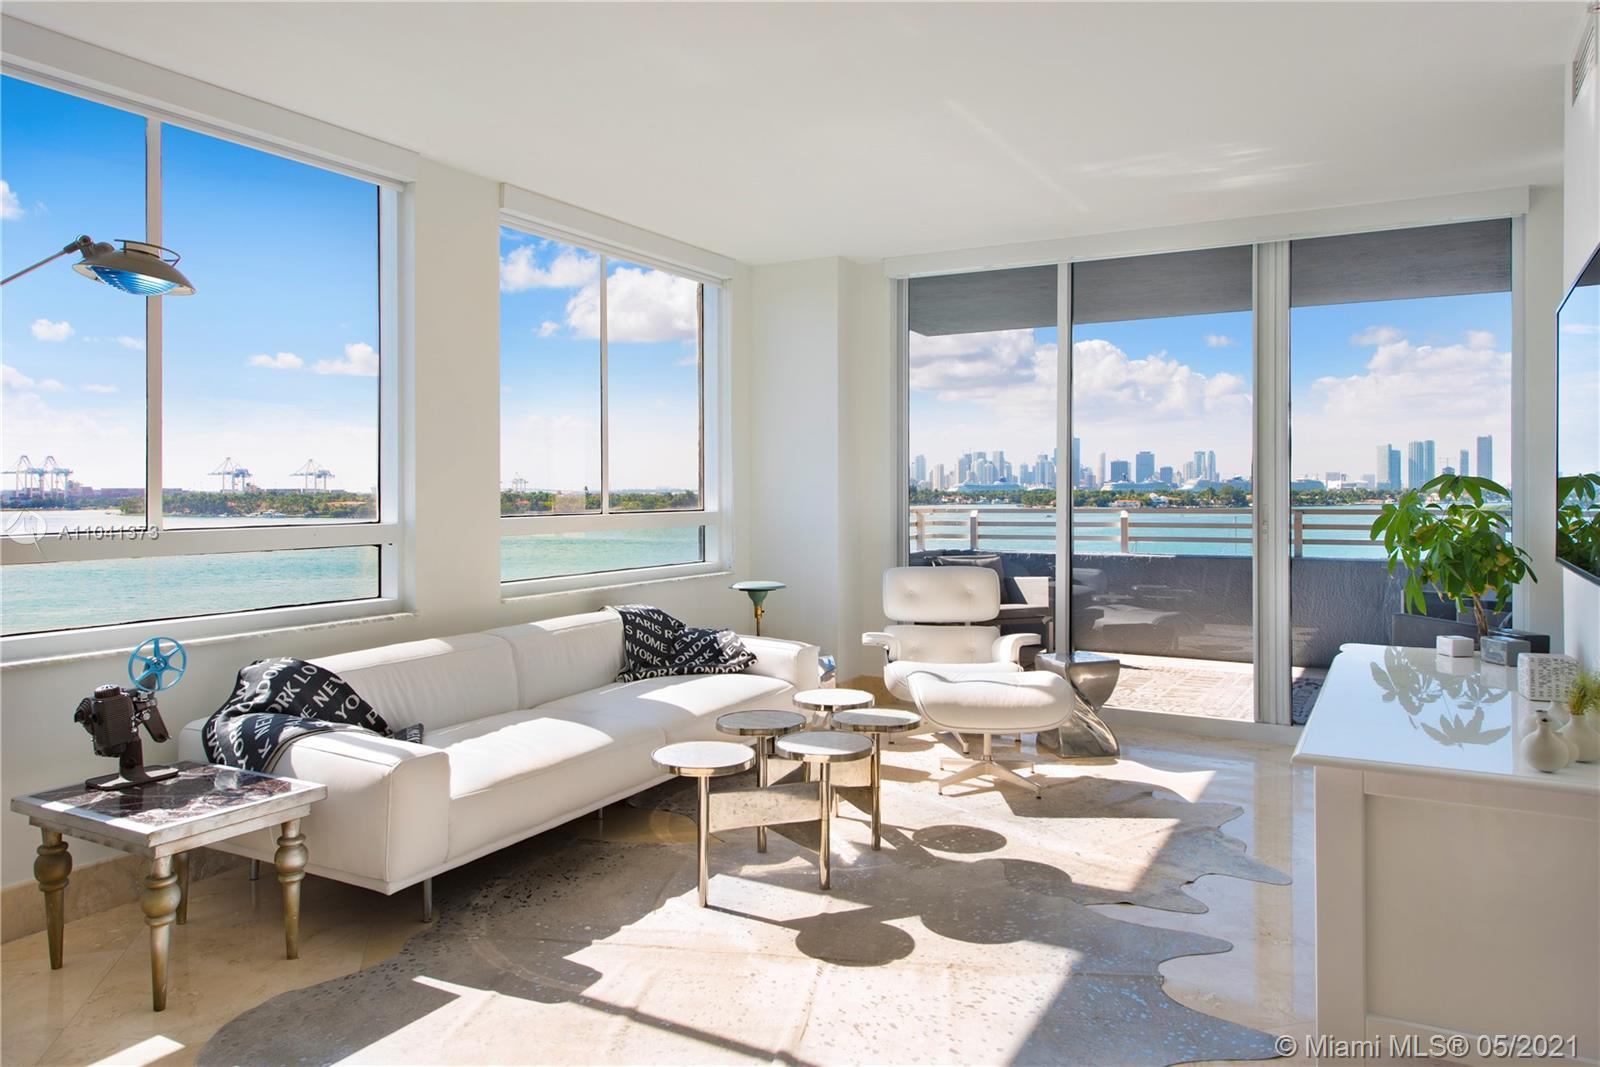 Delightful condo in great location! Wonderful direct West Biscayne Bay, sunset and downtown views. L